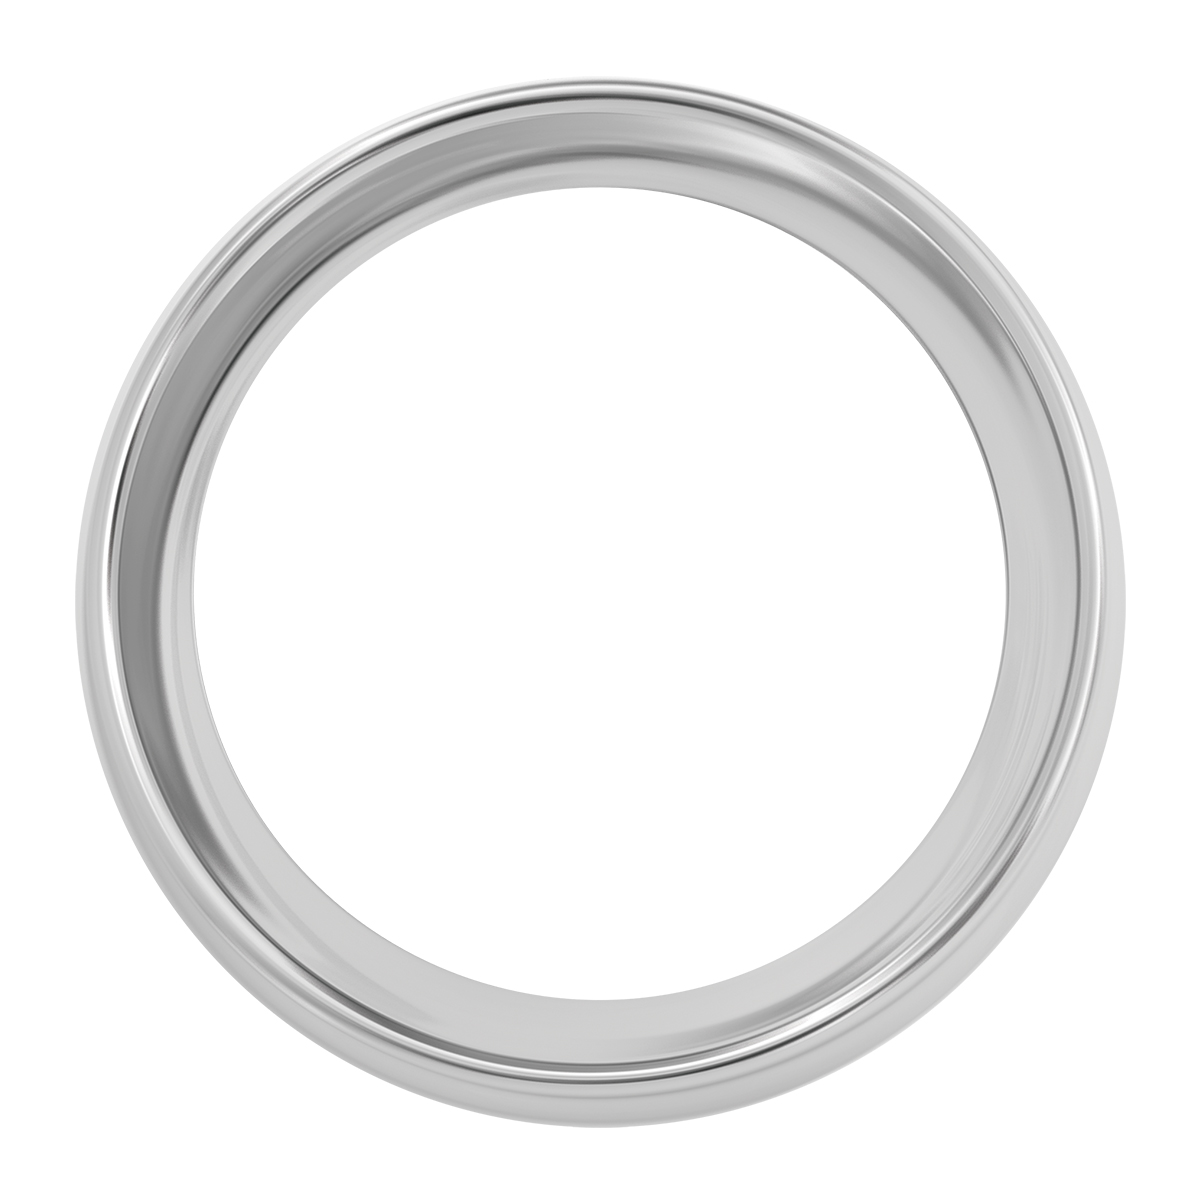 68160 Chrome Steel Small Snap-On Gauge Cover for KW